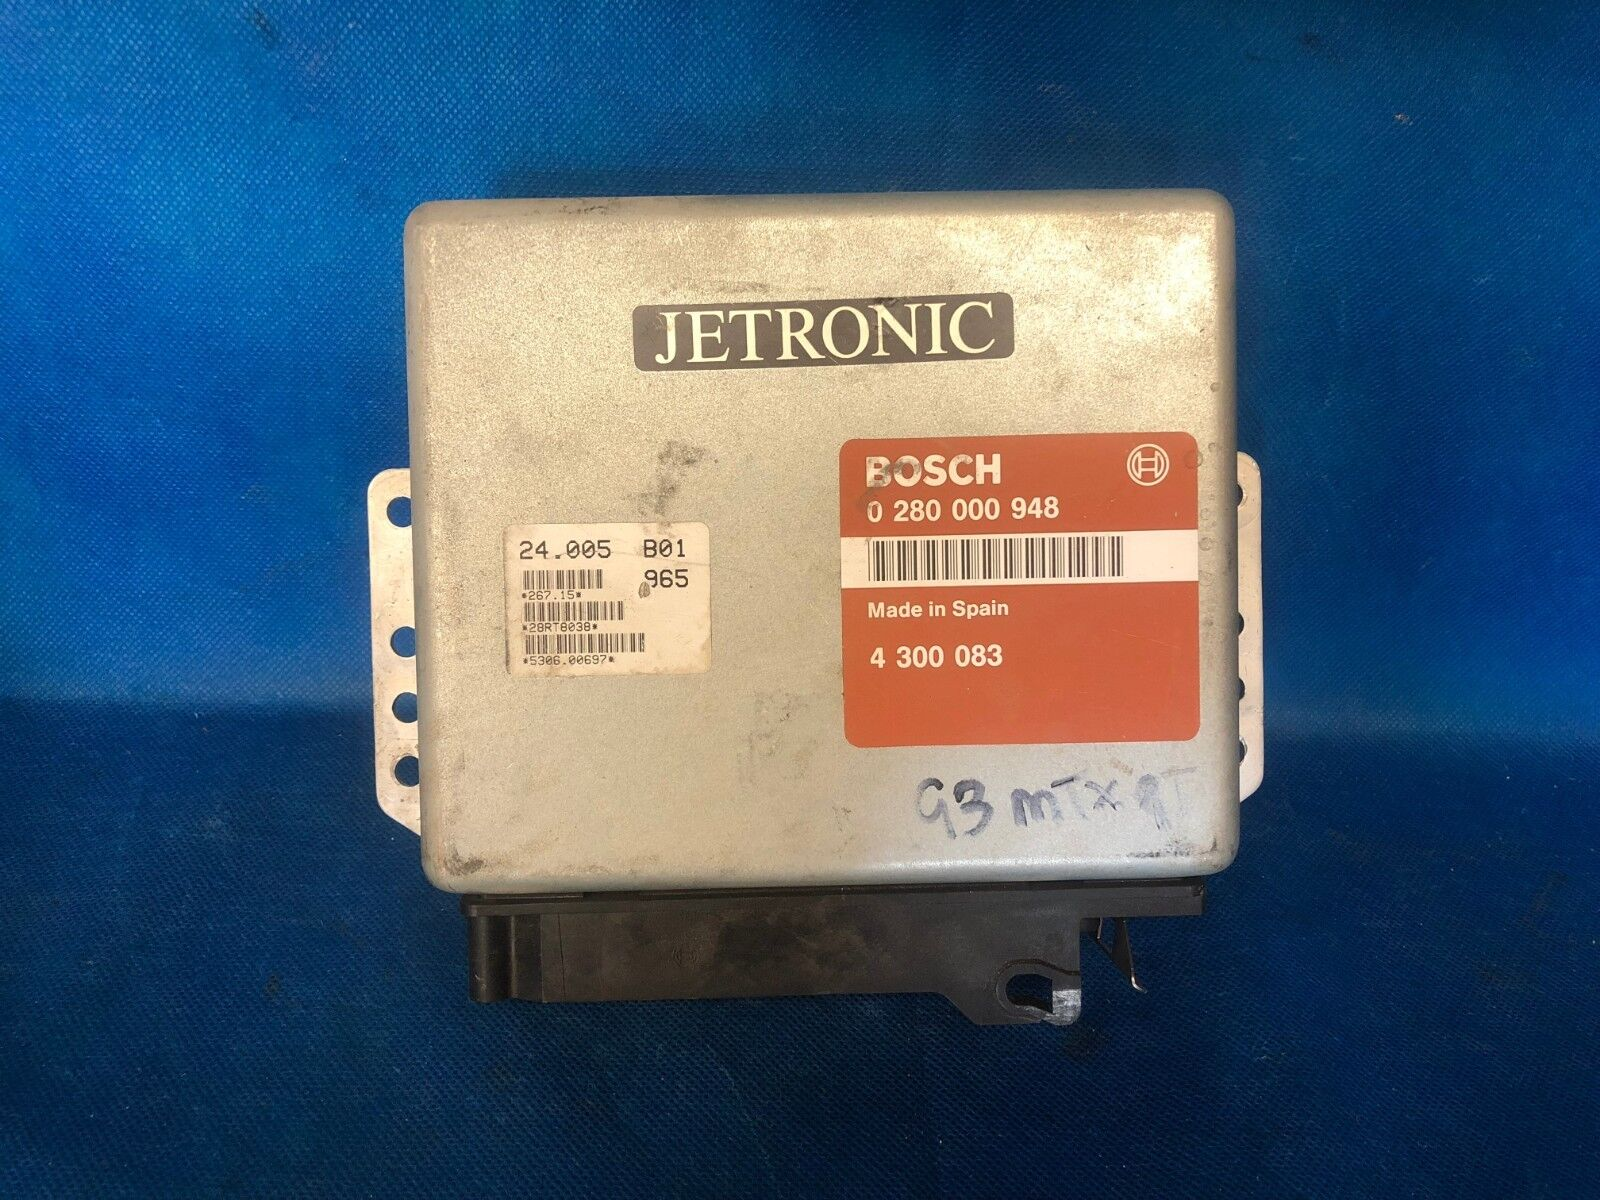 Used Saab 900 Computers And Cruise Control Parts For Sale Se Turbo Electric Seats Partrequestcom Programmed 1993 20 M T Ecu Ecm Pcm Engine Computer 0280000948